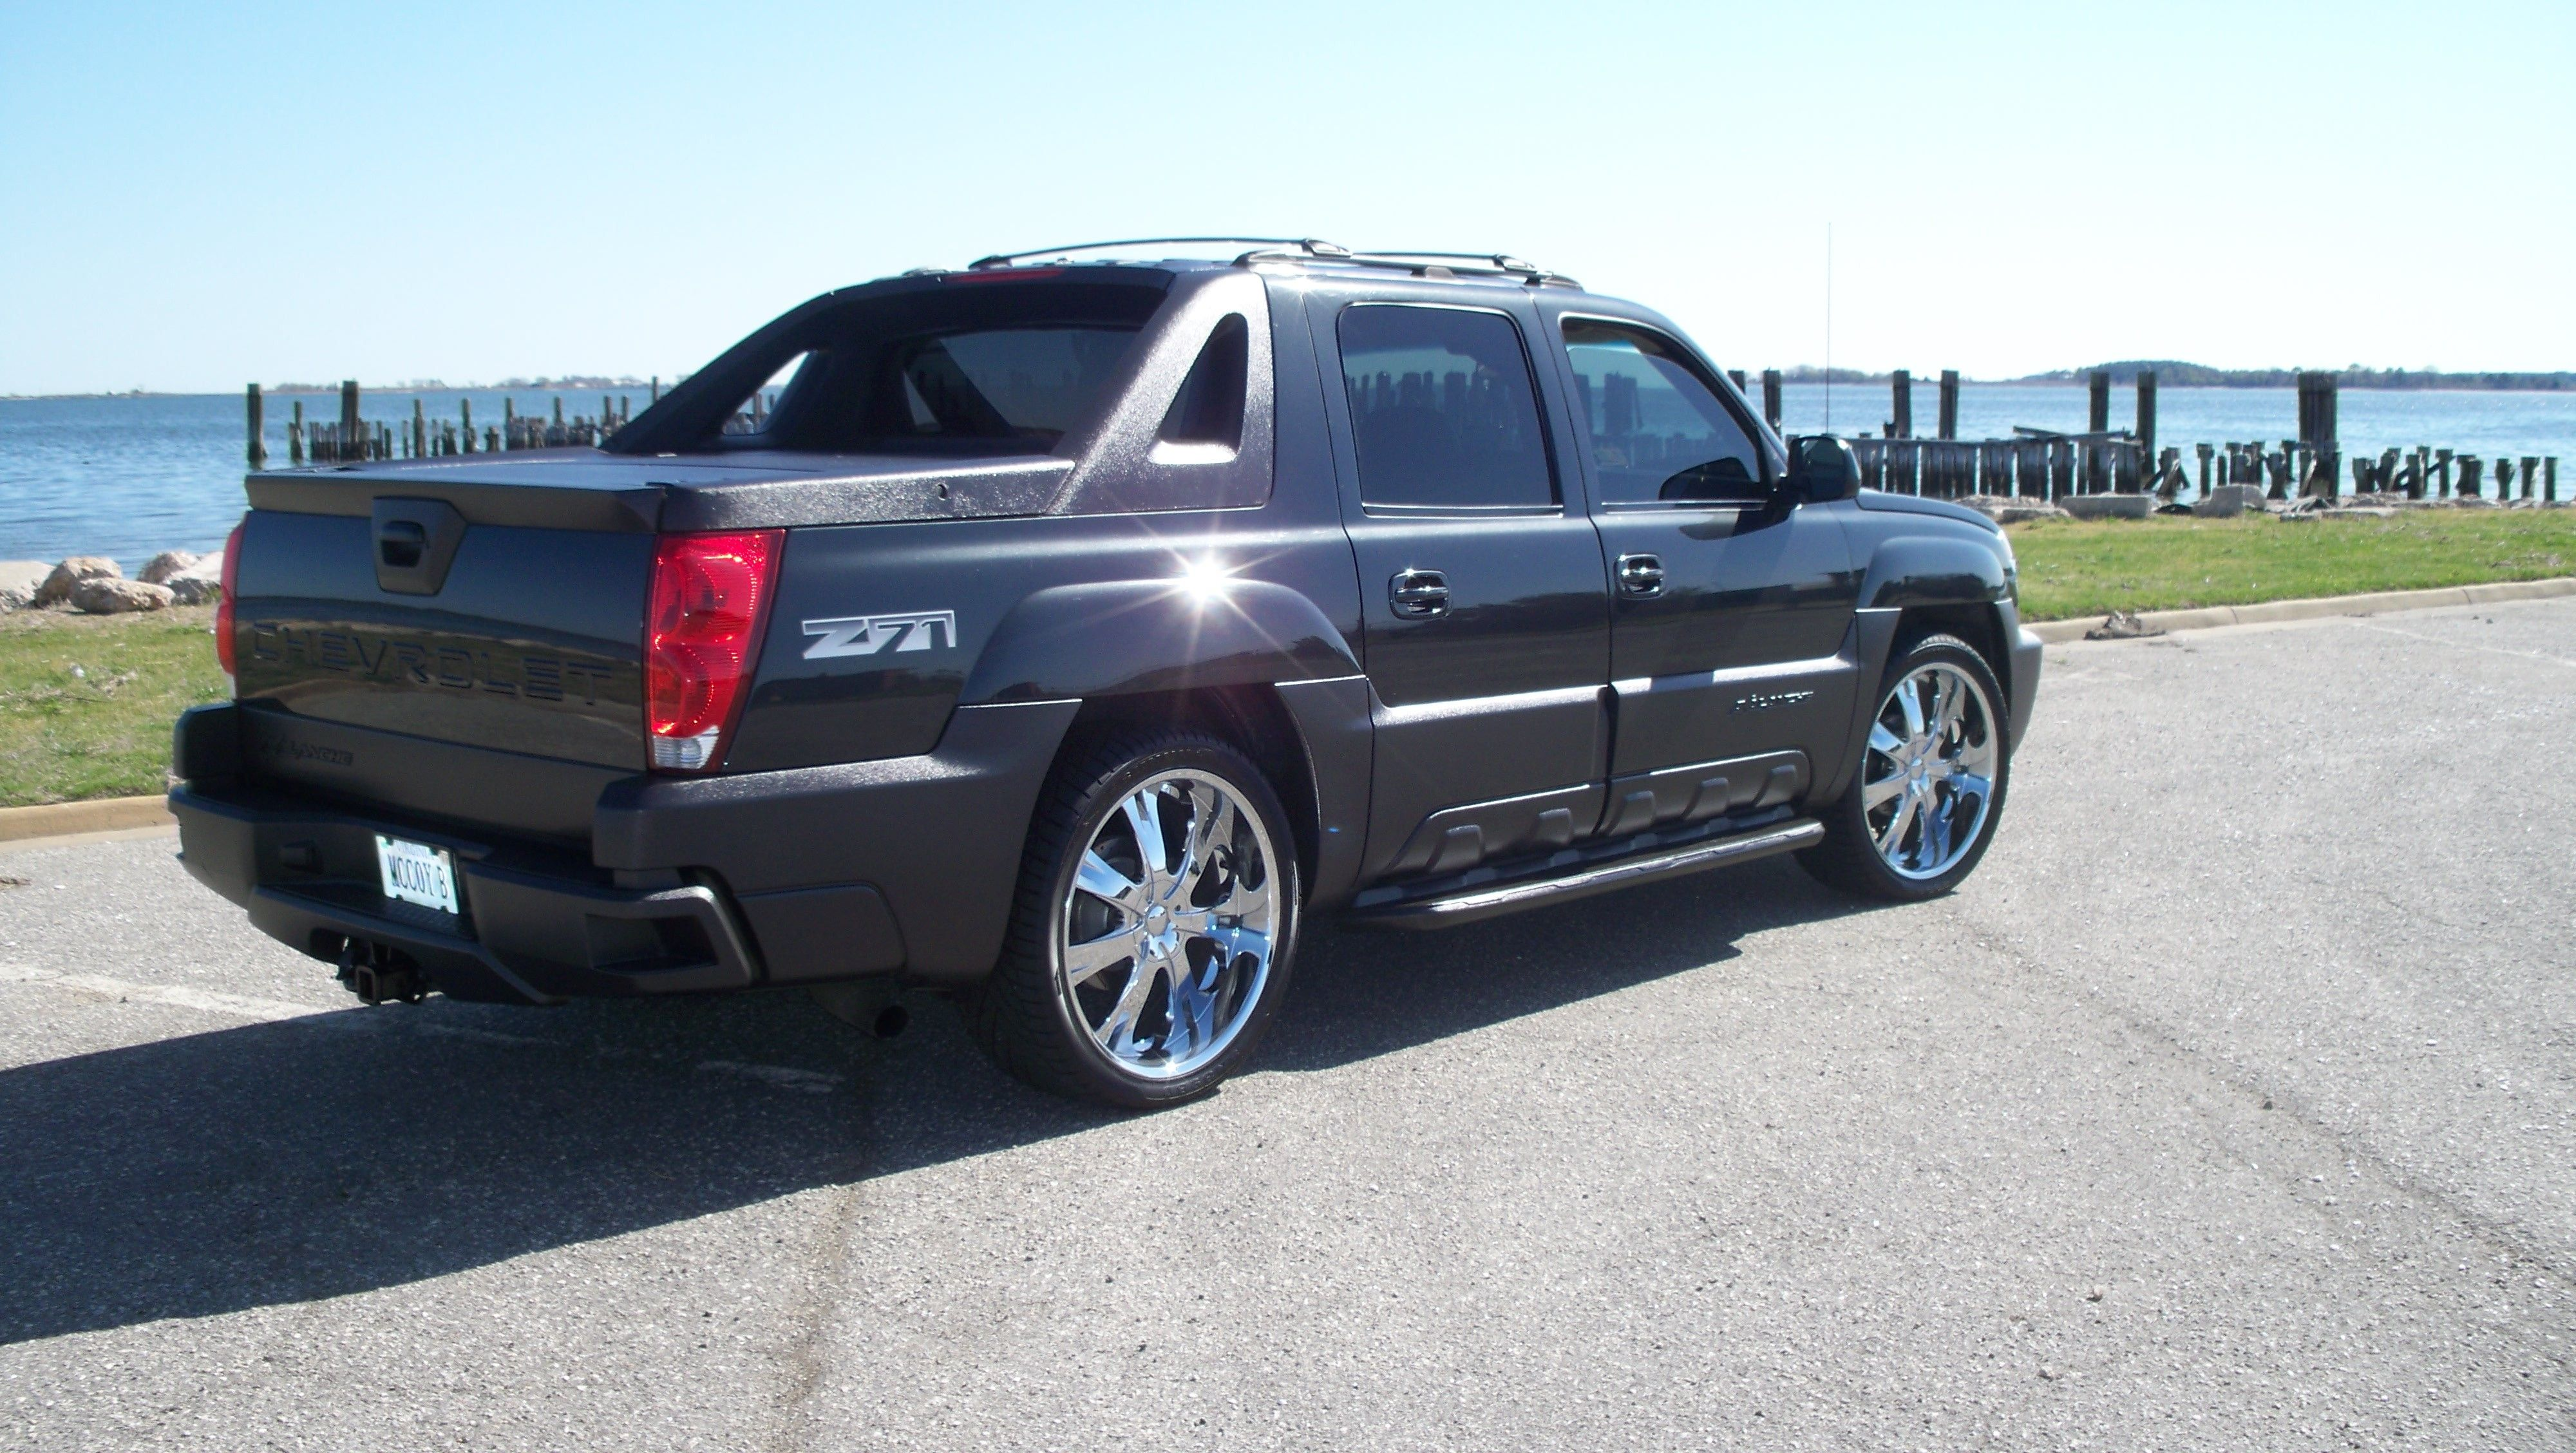 Pin By Jose Luis Gonzalez On Chevy Avalanche Chevy Avalanche